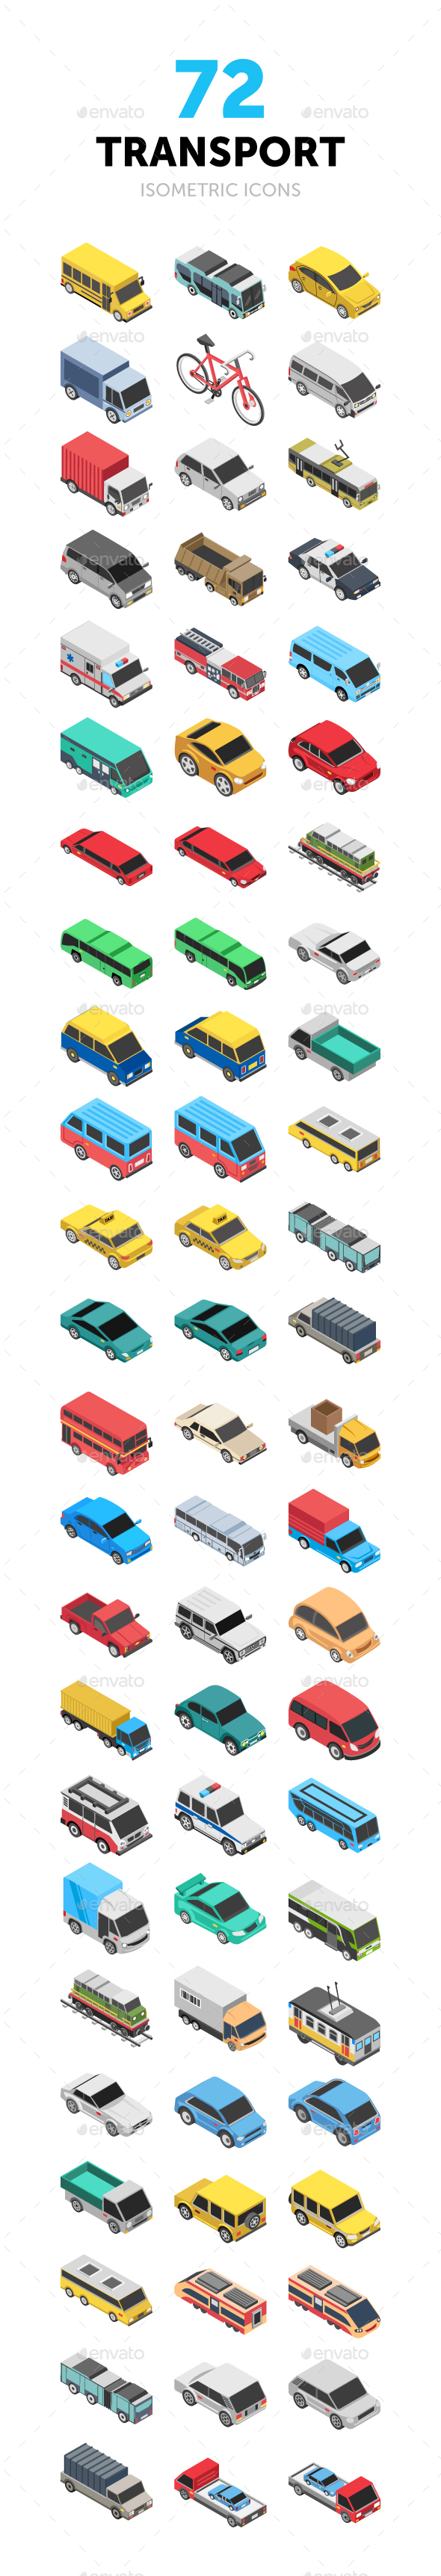 72 Transport Isometric Icons - Icons